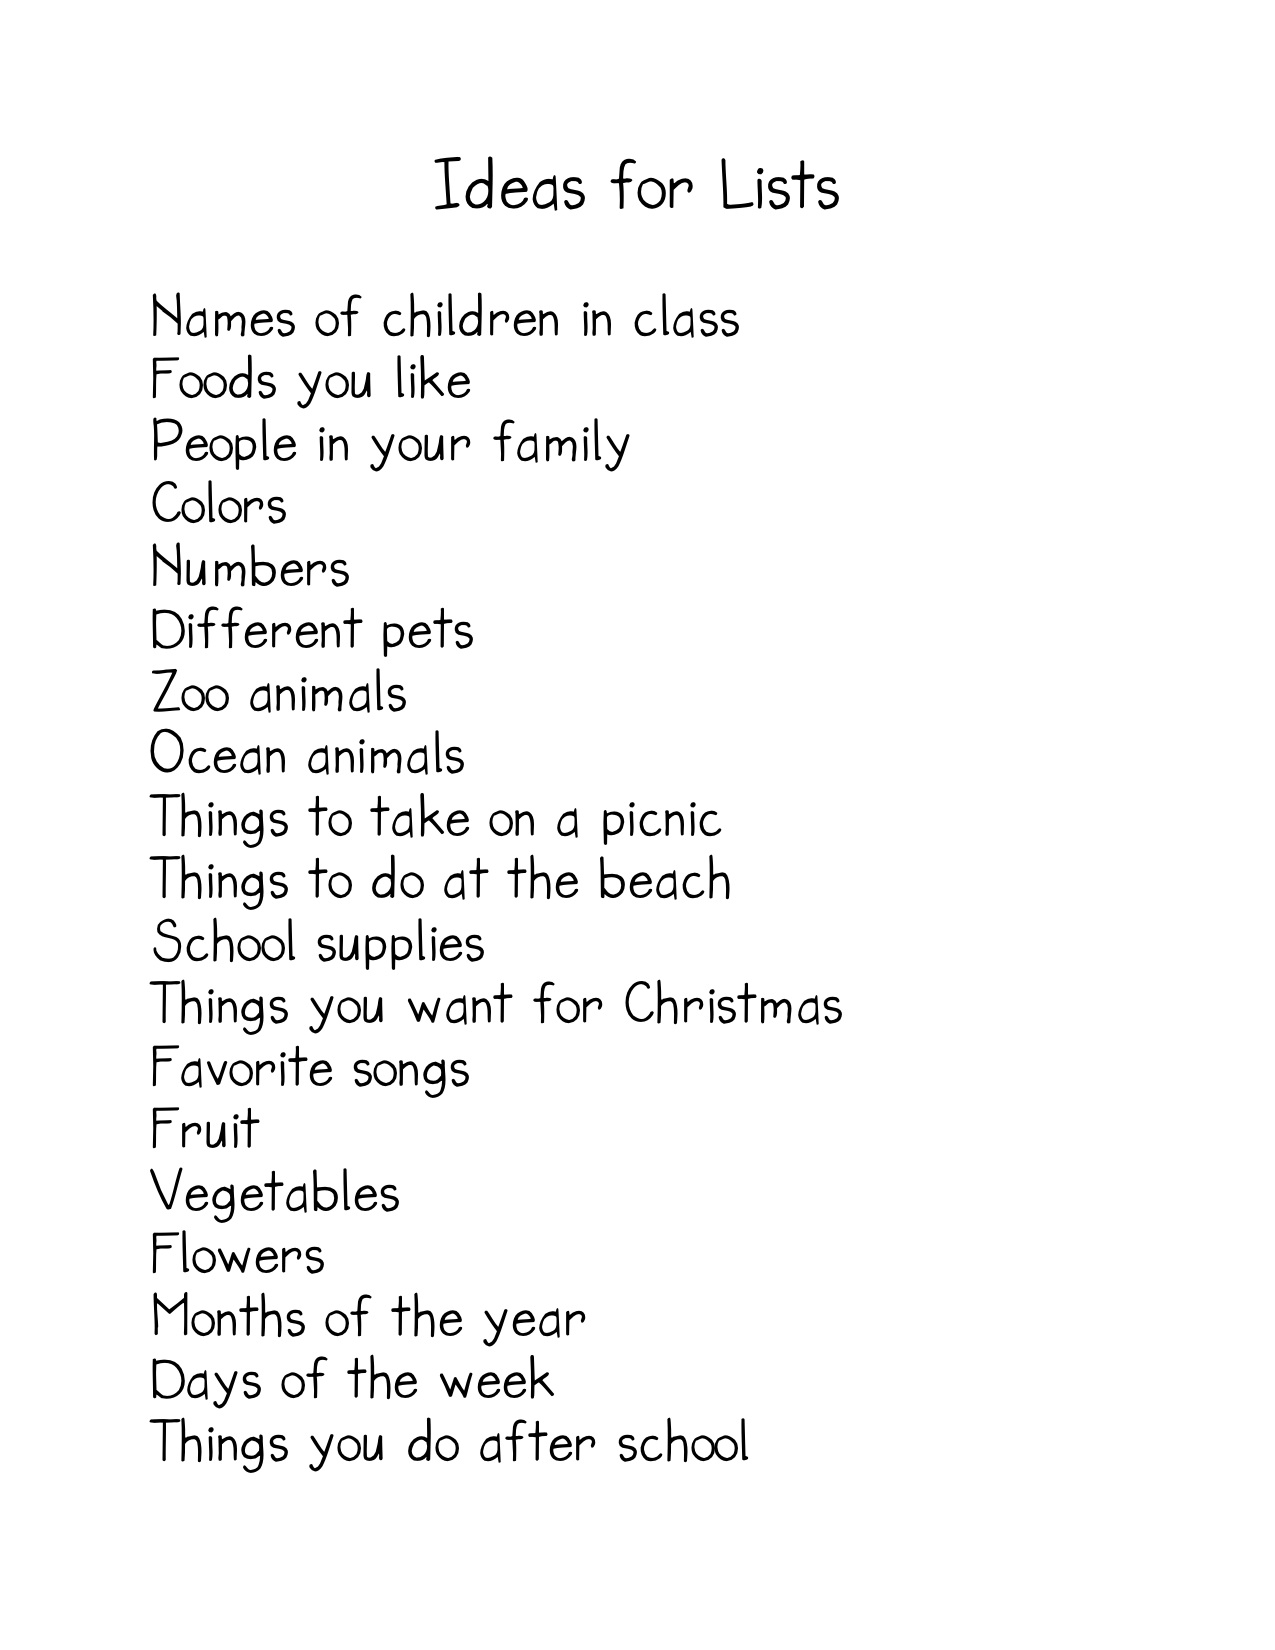 Here are some ideas of lists that the children might choose to write.